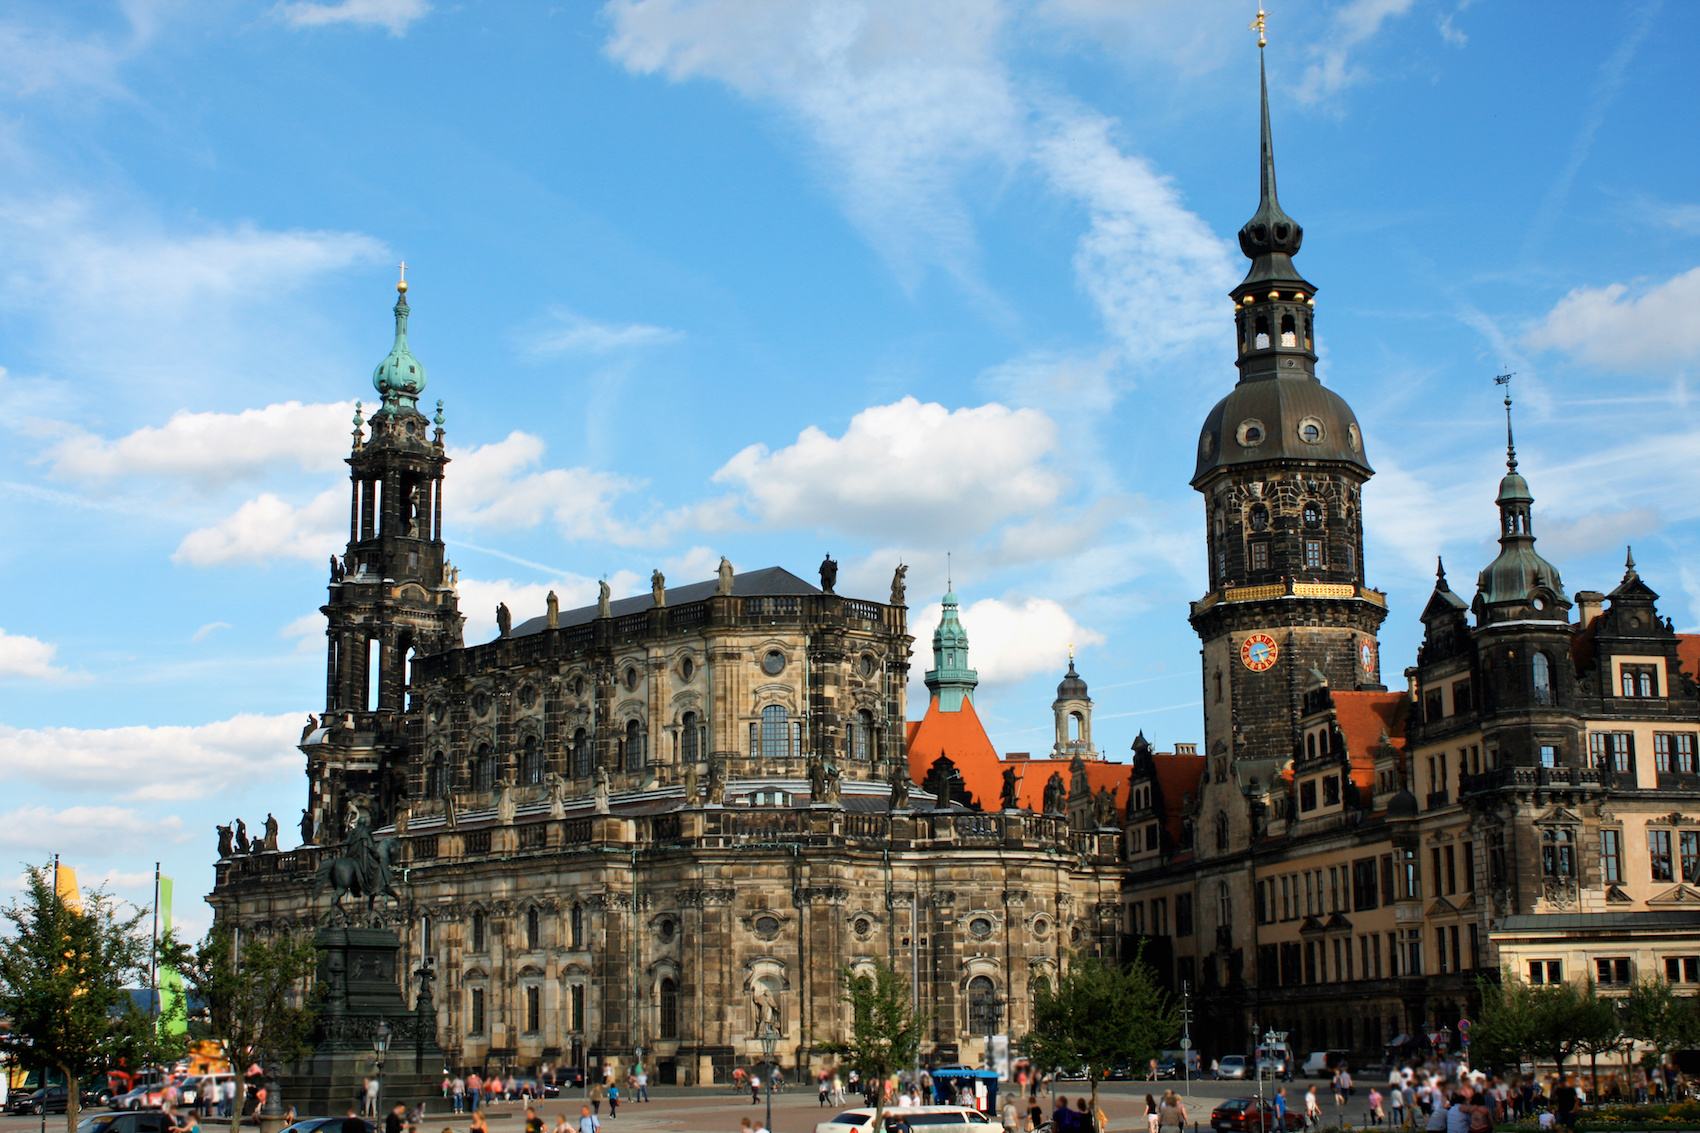 Dresden Castle or Royal Palace is one of the oldest buildings in Dresden